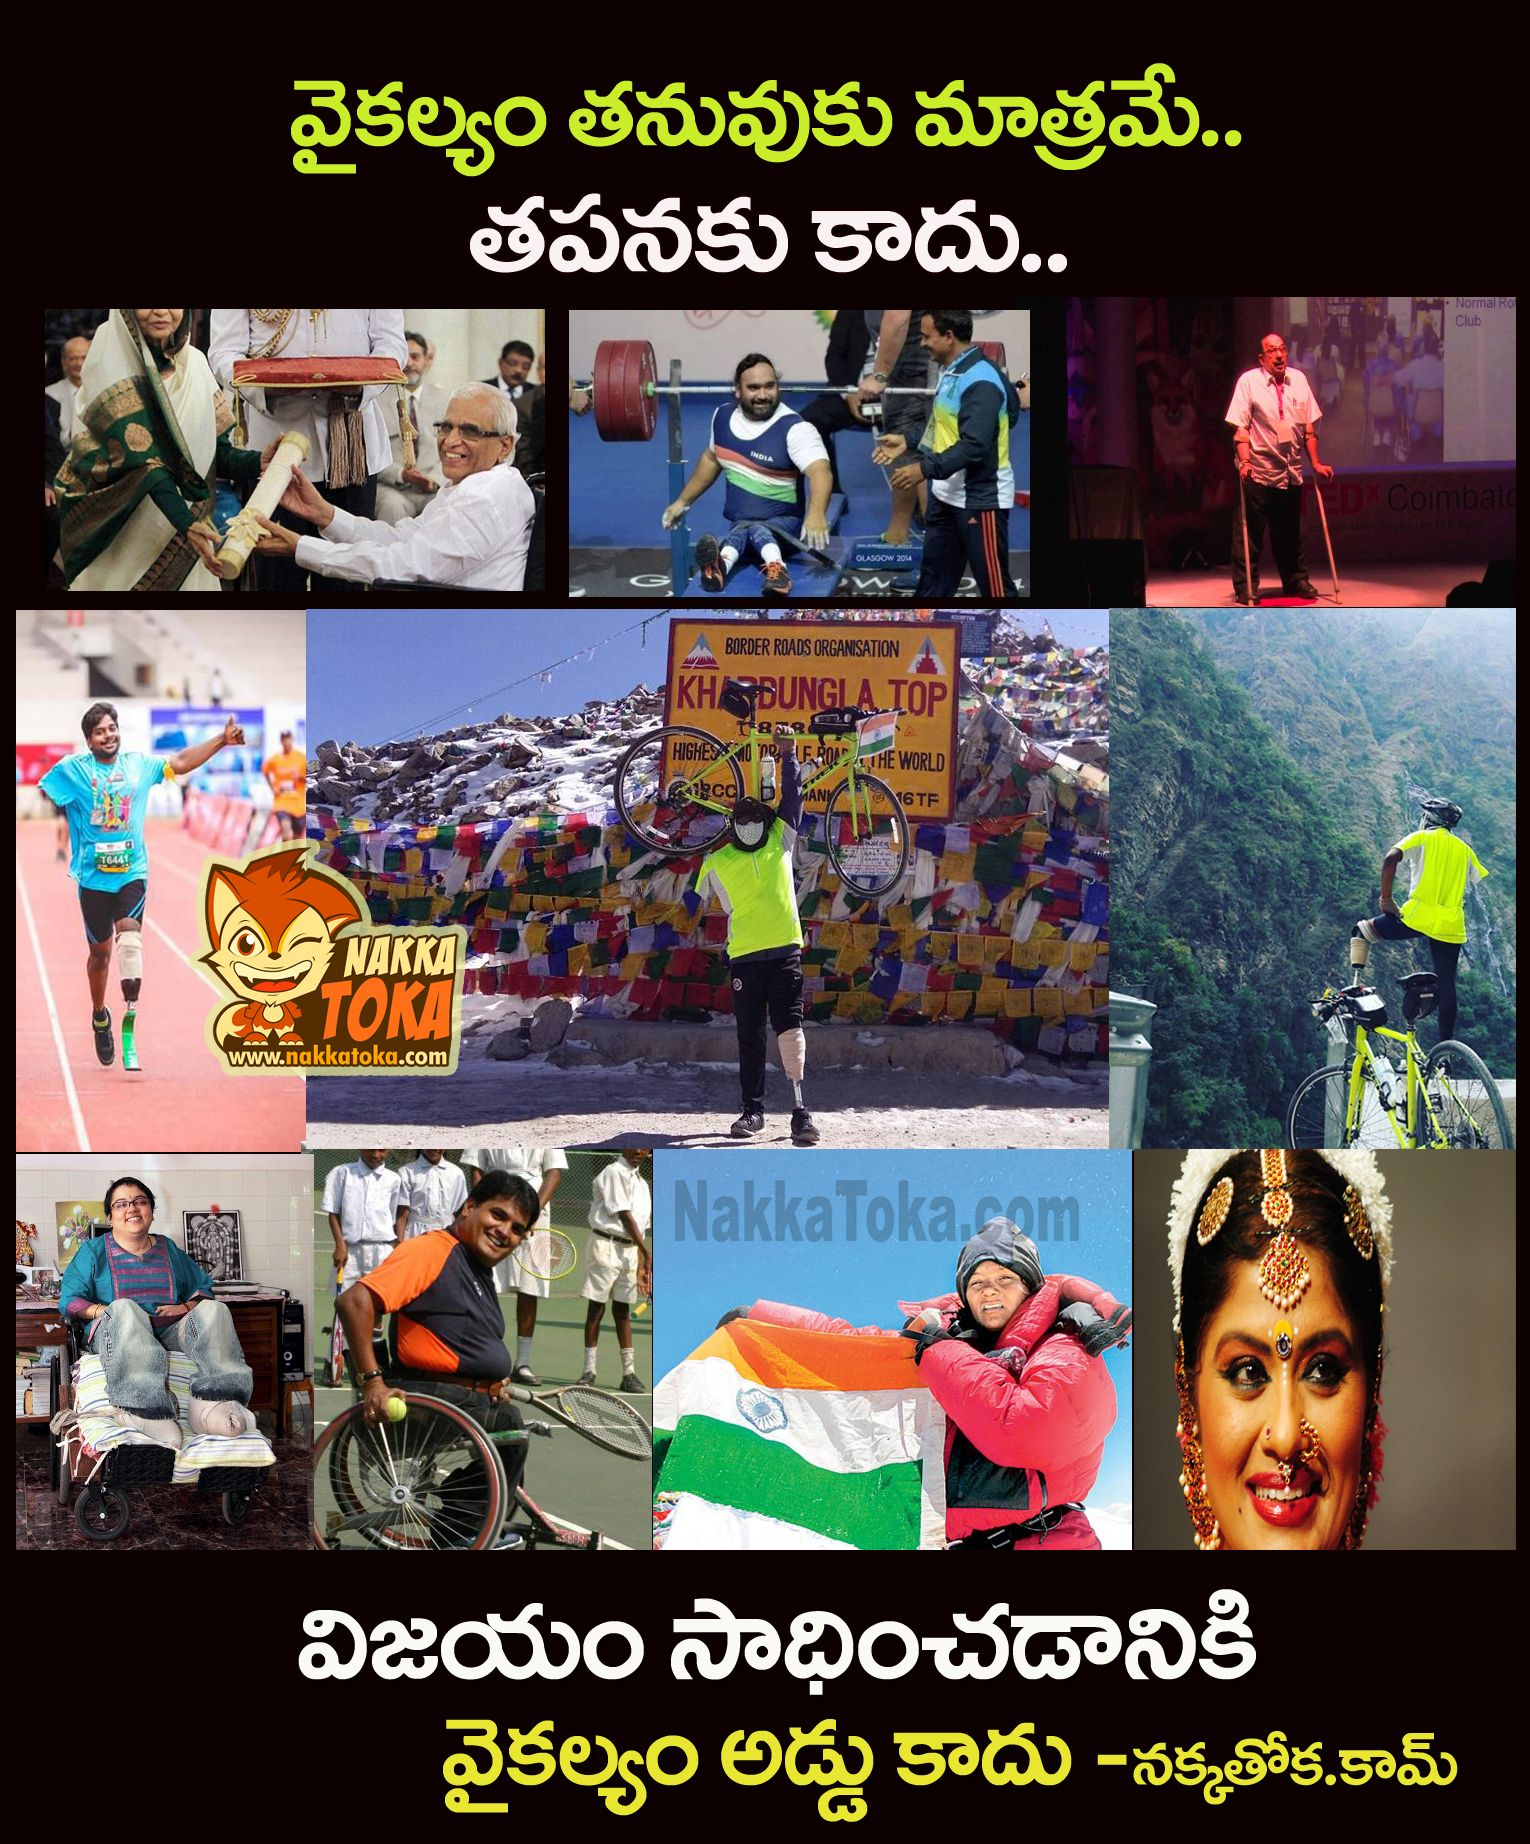 Memes and Trolls on Ivanka From Top Telugu FB Pages